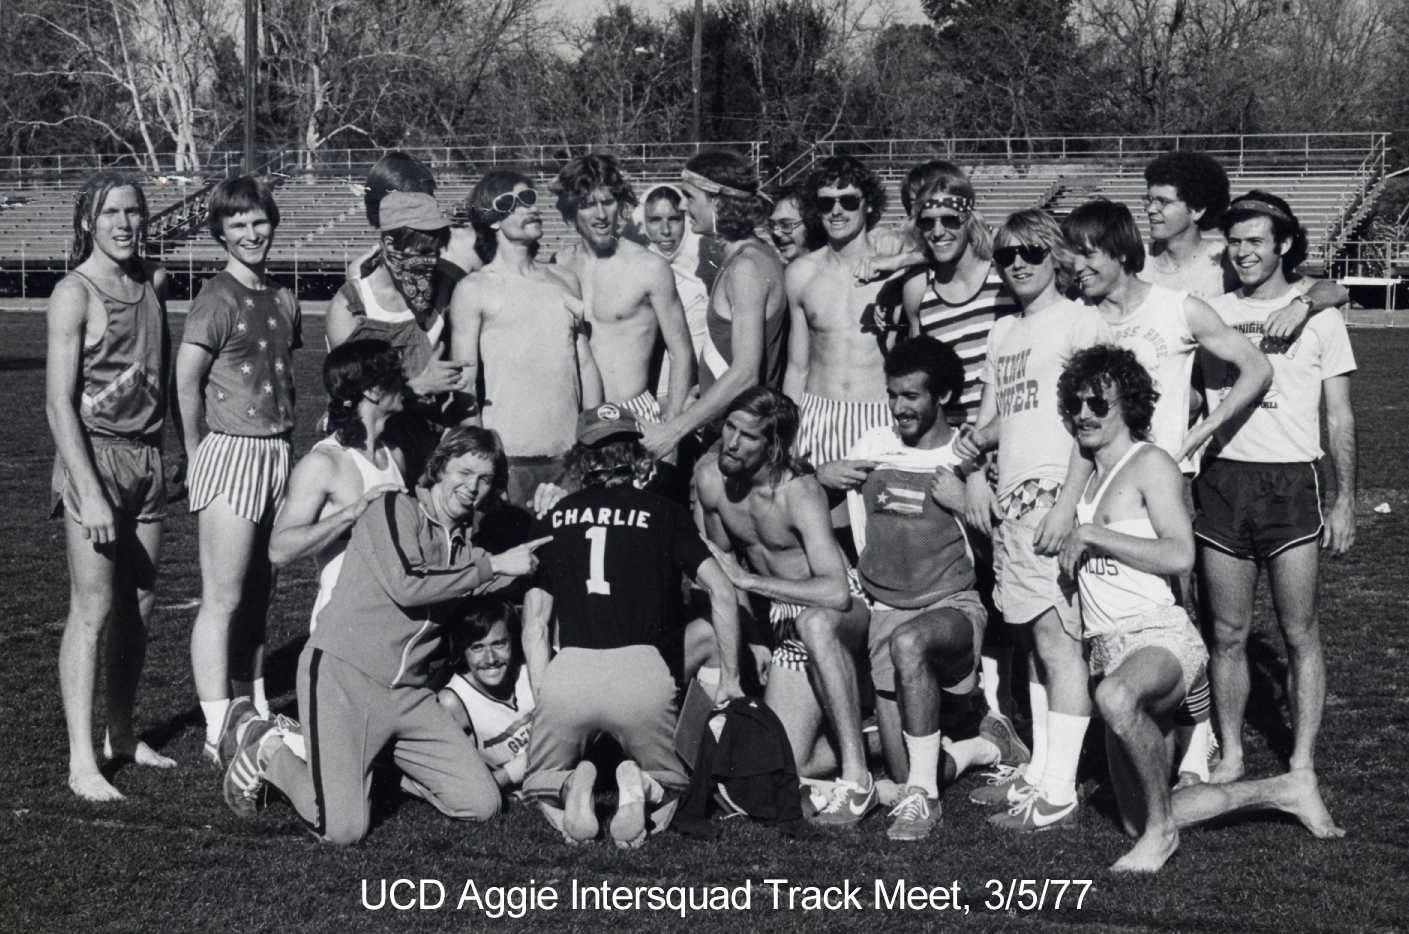 Some of the Aggies founding members after a 1977 UC Davis intersquad meet.